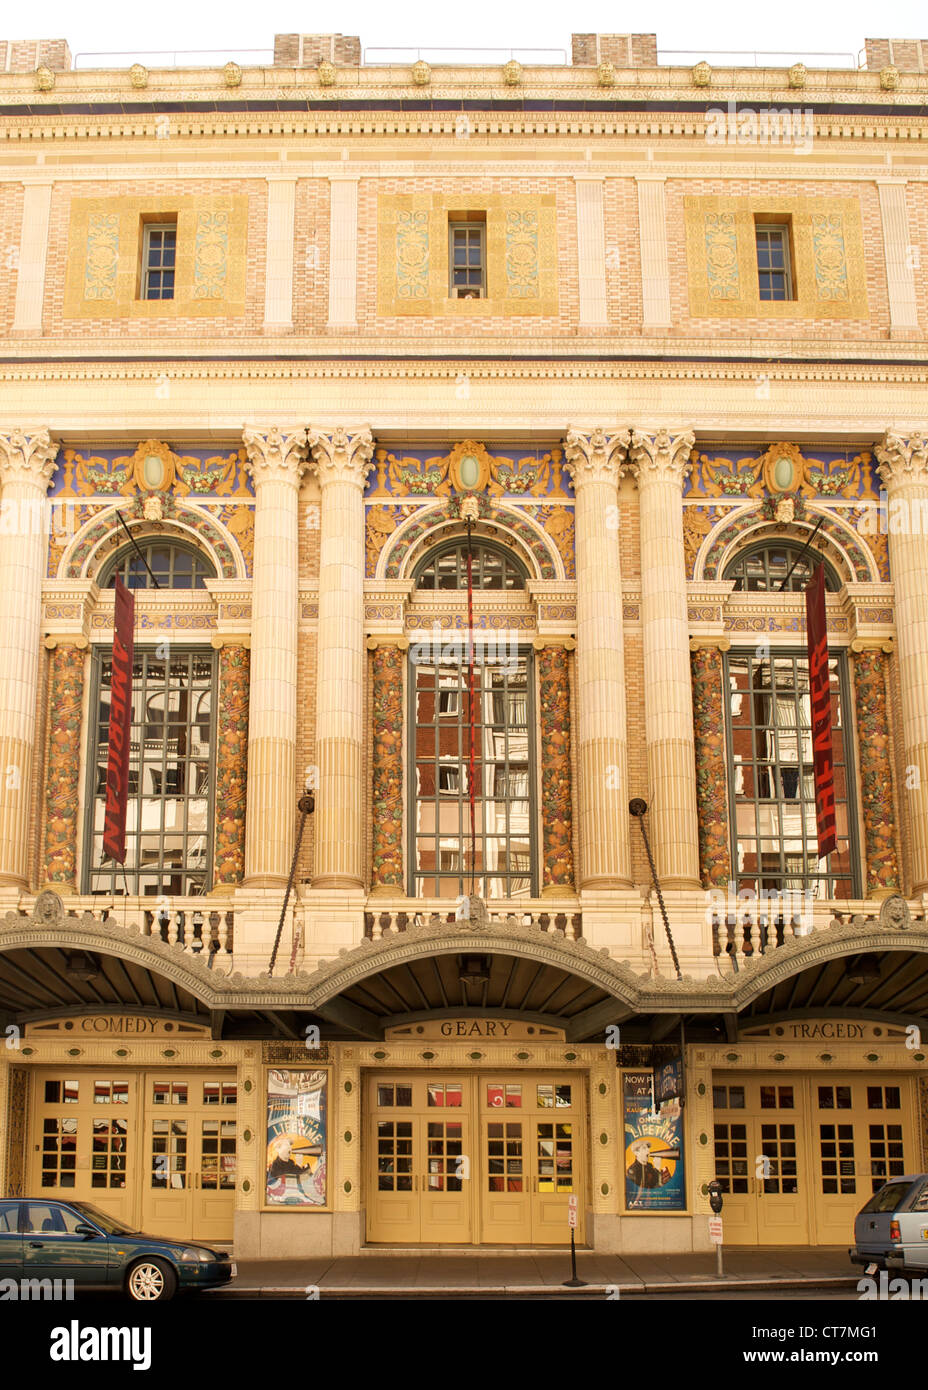 Entrance and facade of the American Conservatory Theatre in San Francisco, California, USA. - Stock Image